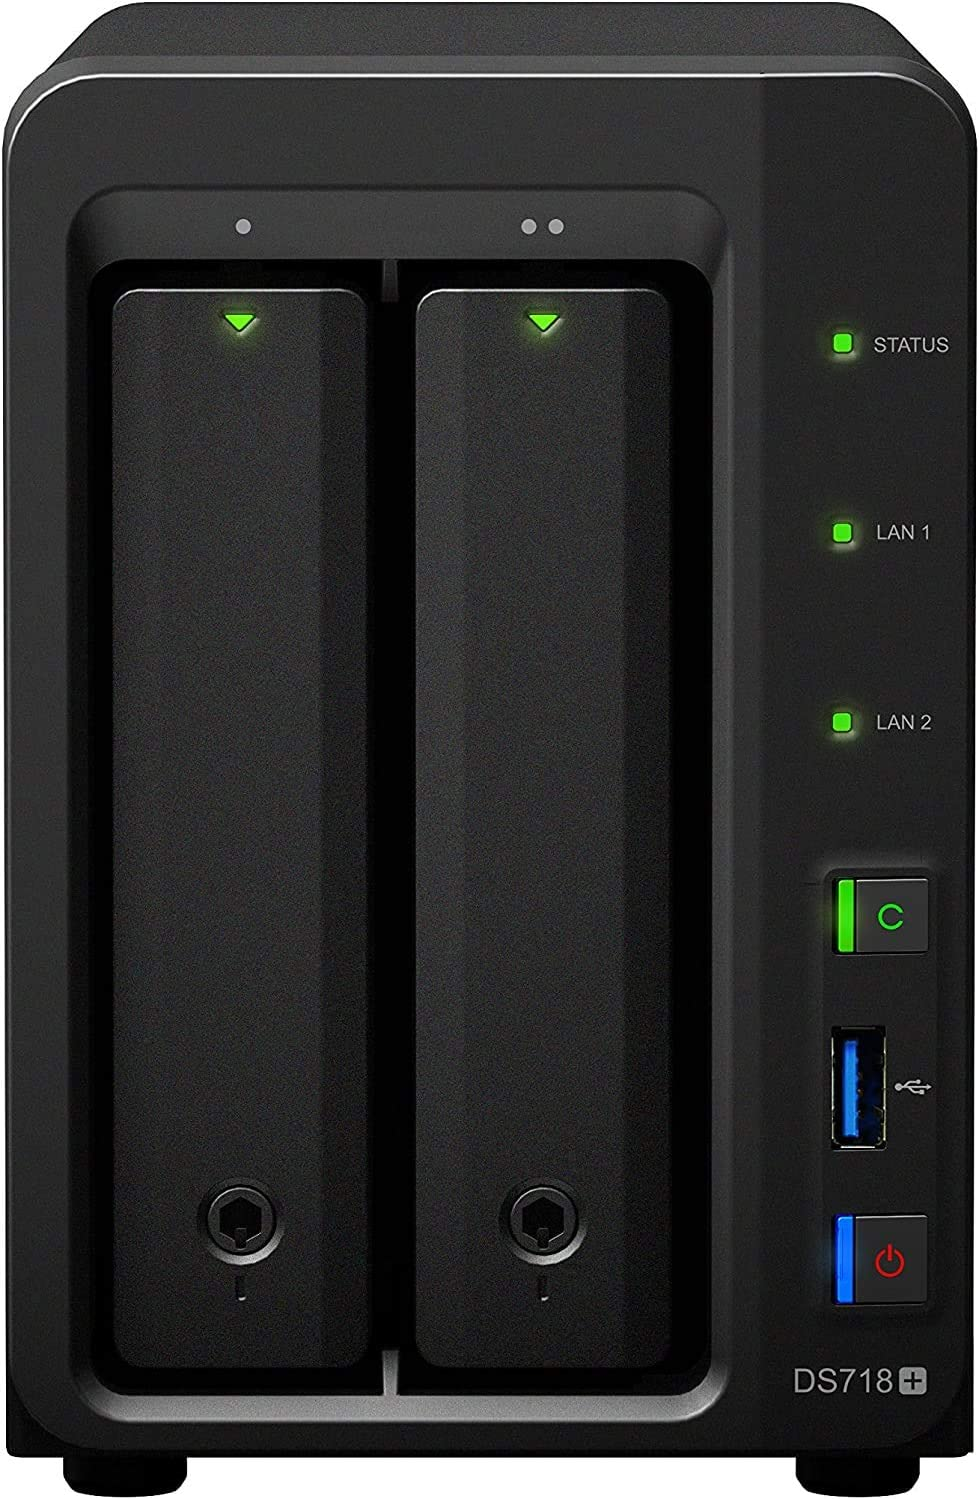 Synology Ds718 6gb Nas 32tb Ironwolf Computers Accessories